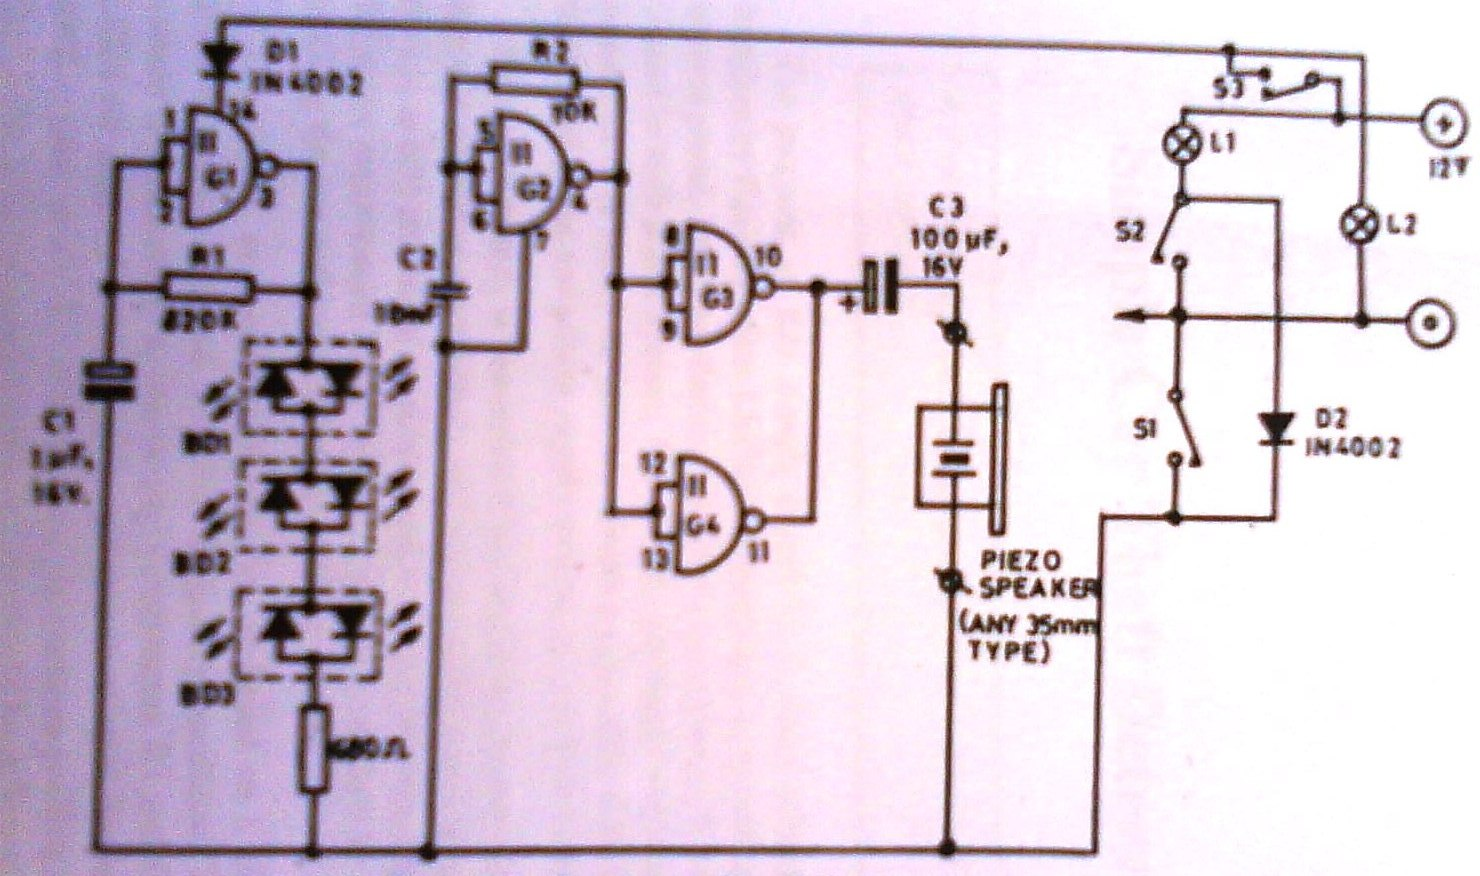 2012 Controller Circuit 32w Hi Fi Audio Amplifier With Tda2050 Diagram The Of Headlights On Indicator